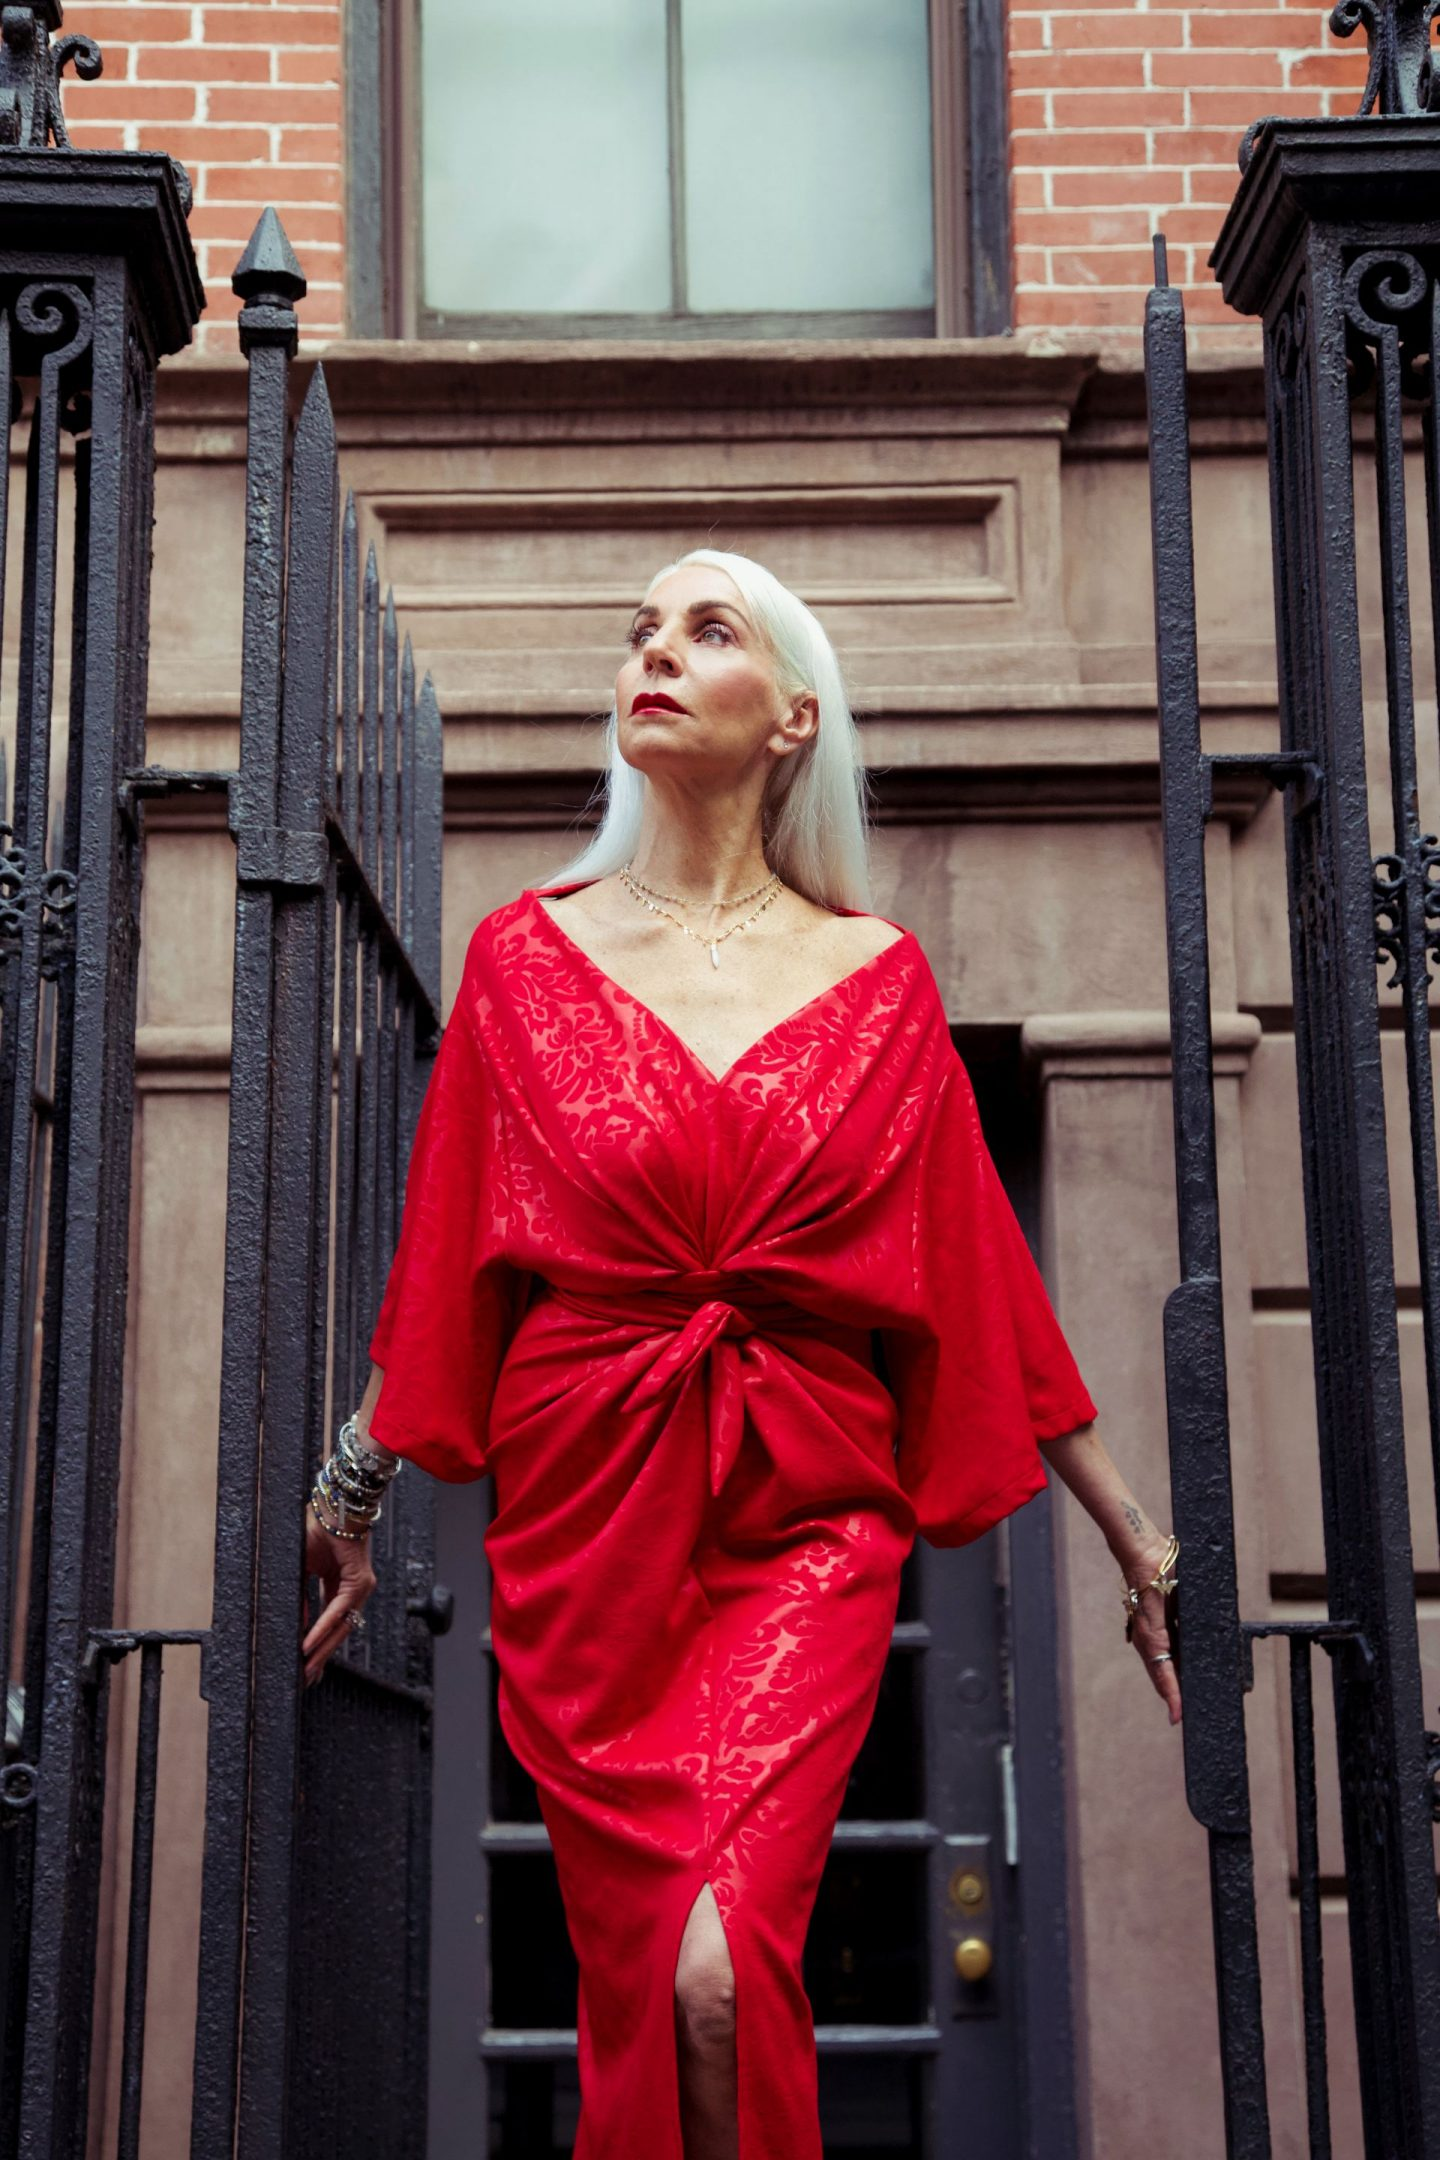 red dress by house of daughtry in 60 year old model debra corley in new york for new york fashion week